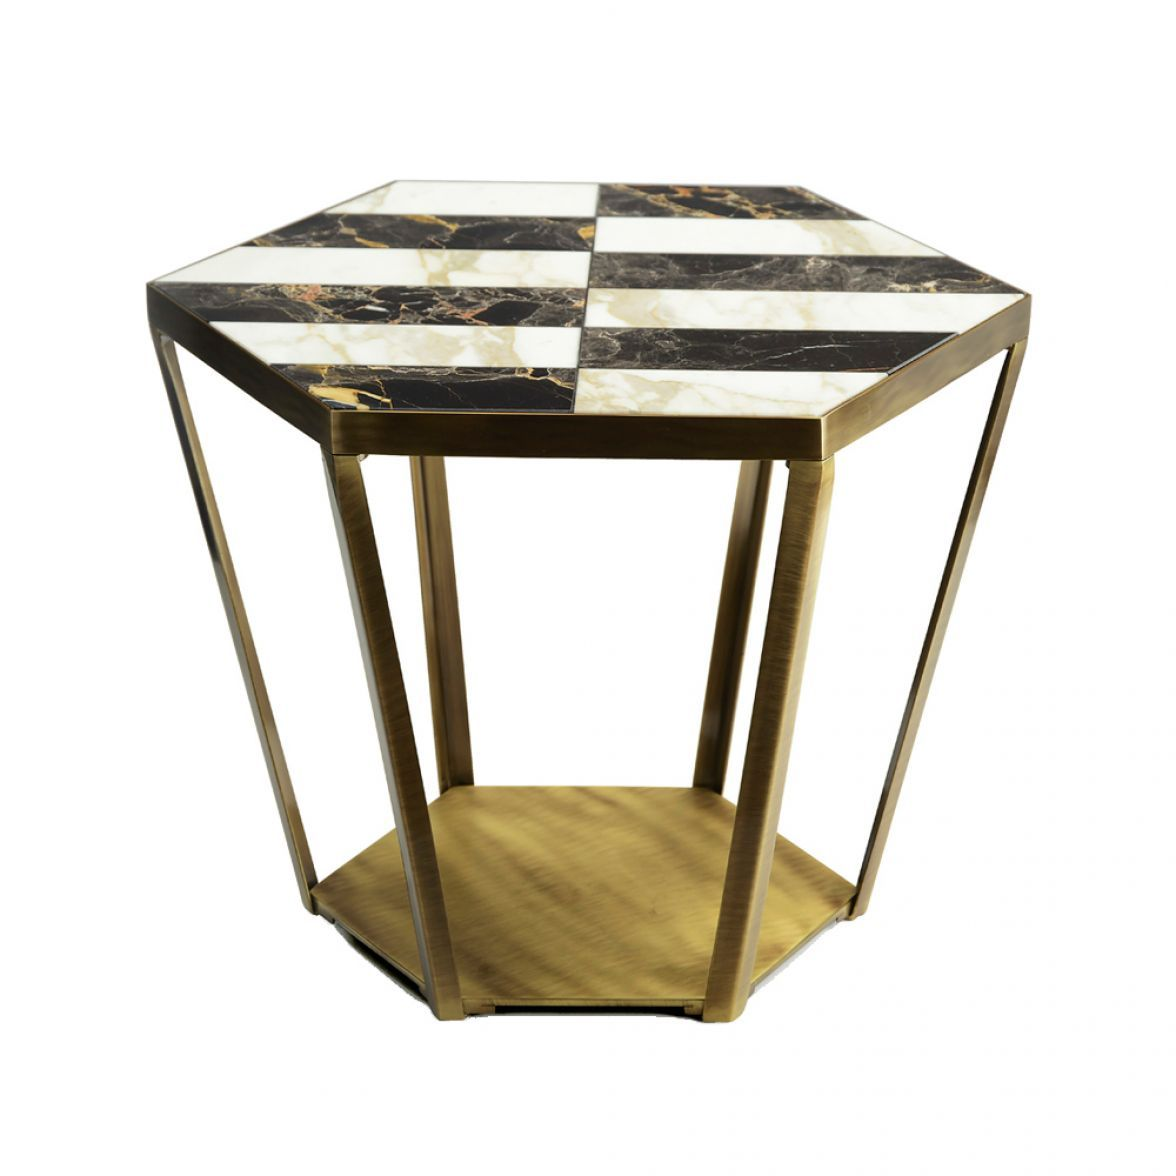 RAY SIDE TABLE WITH MARBLE INLAID TOP